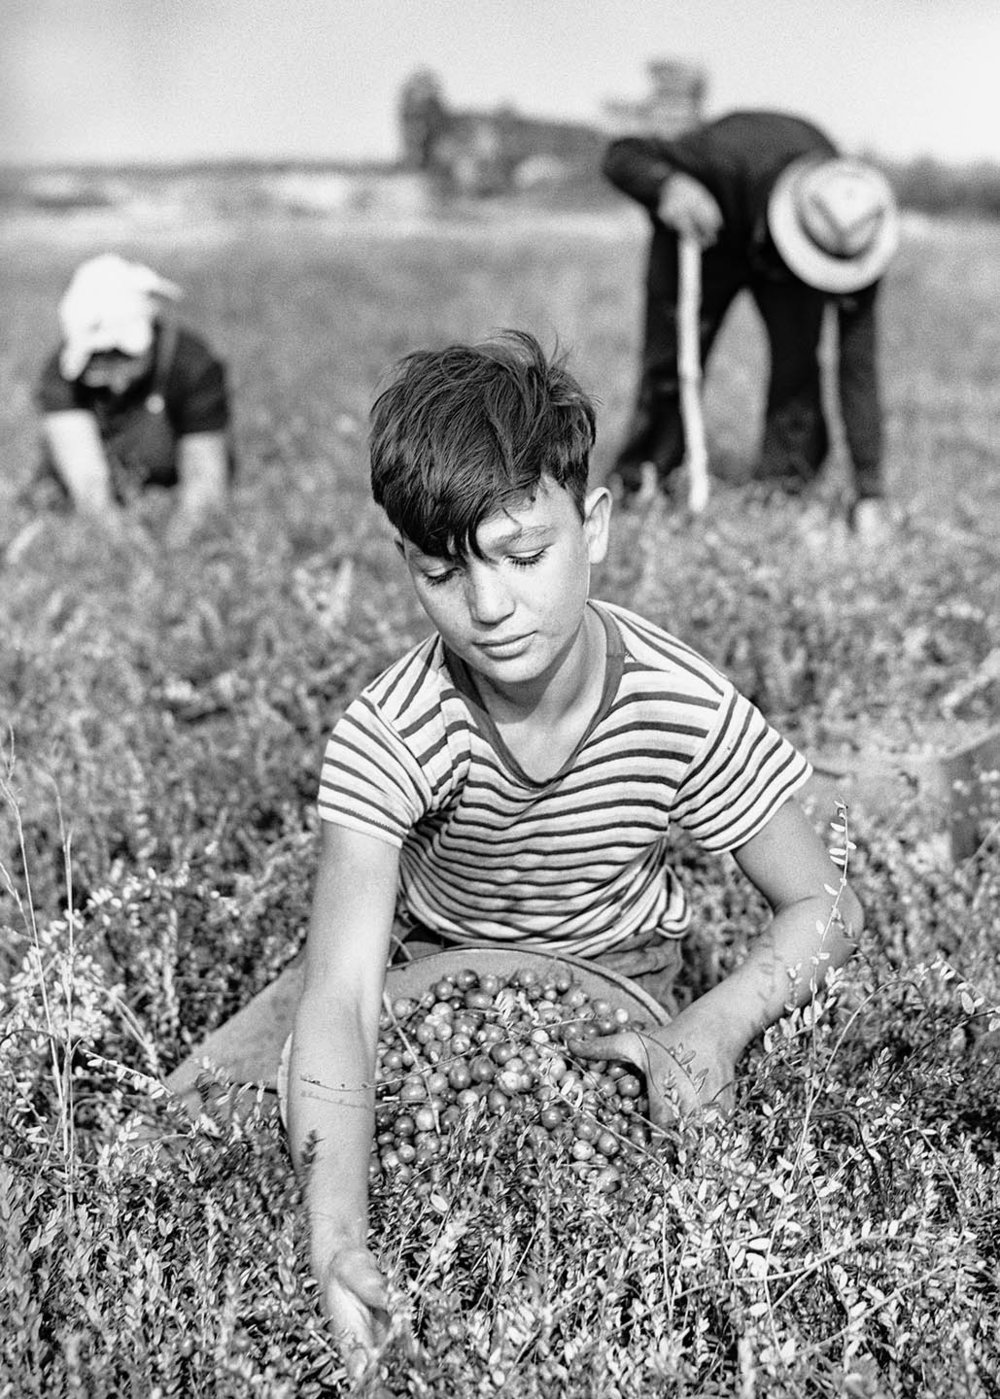 Boy picking cranberries. Burlington County, NJ. 1938